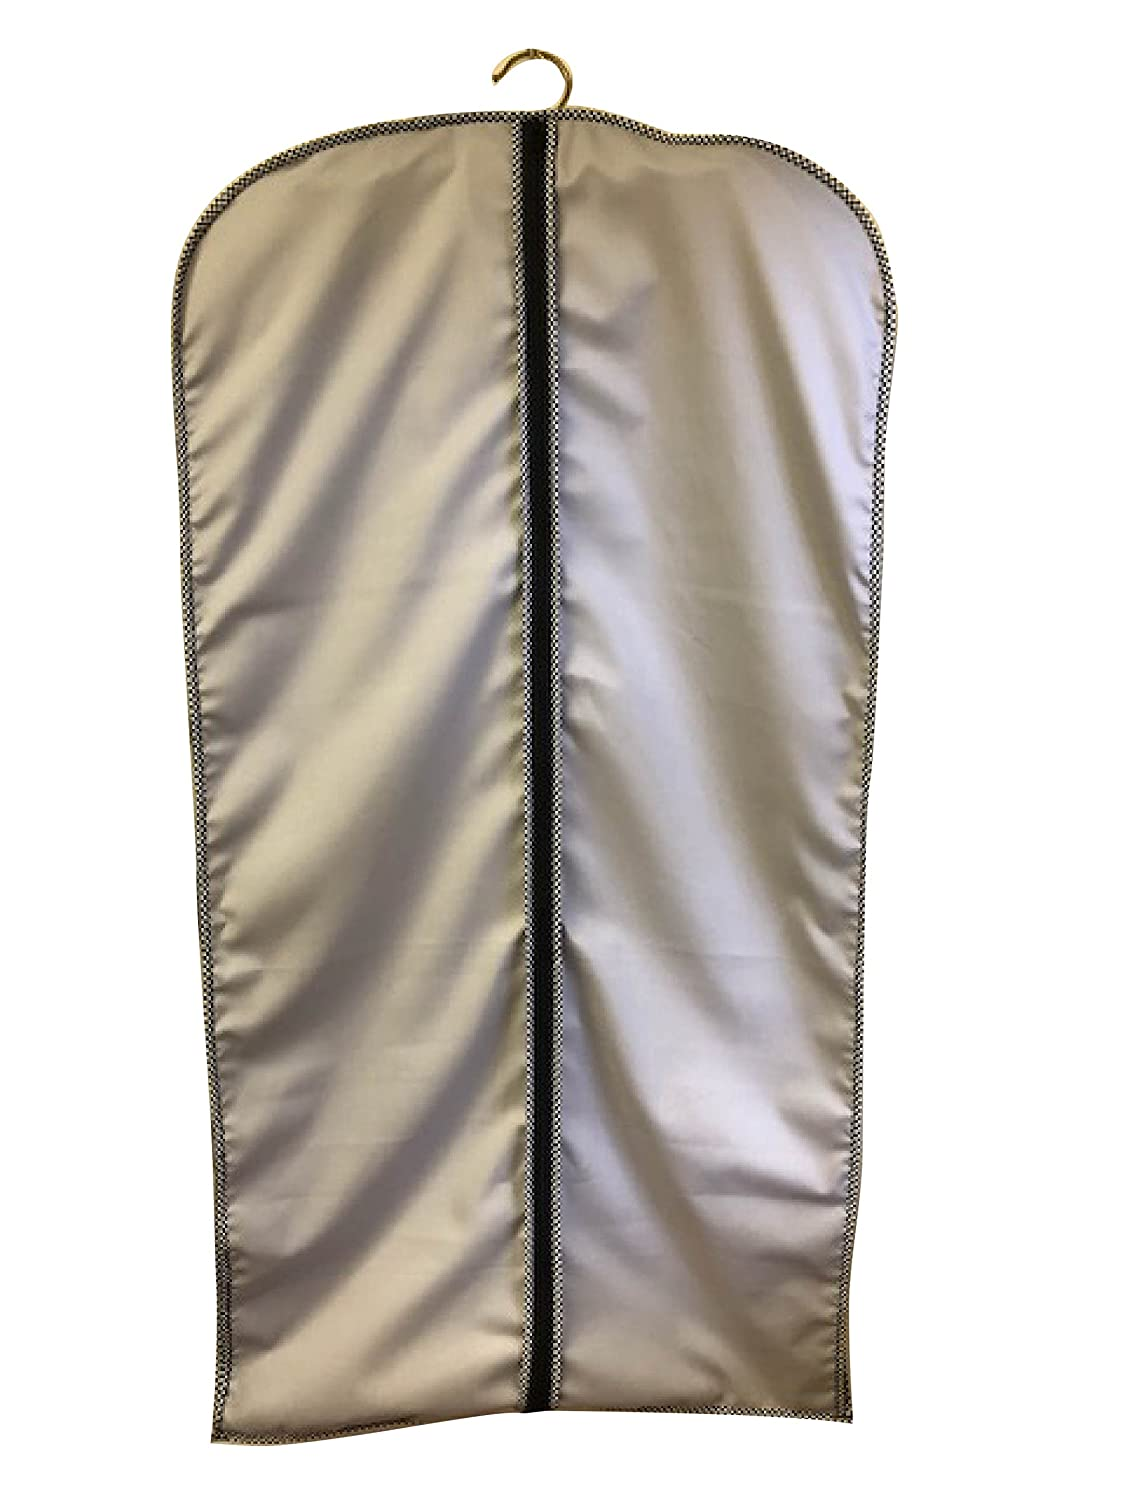 5ba29a505859 Amazon.com  Breathable Cotton Cloth Dress Garment Bag